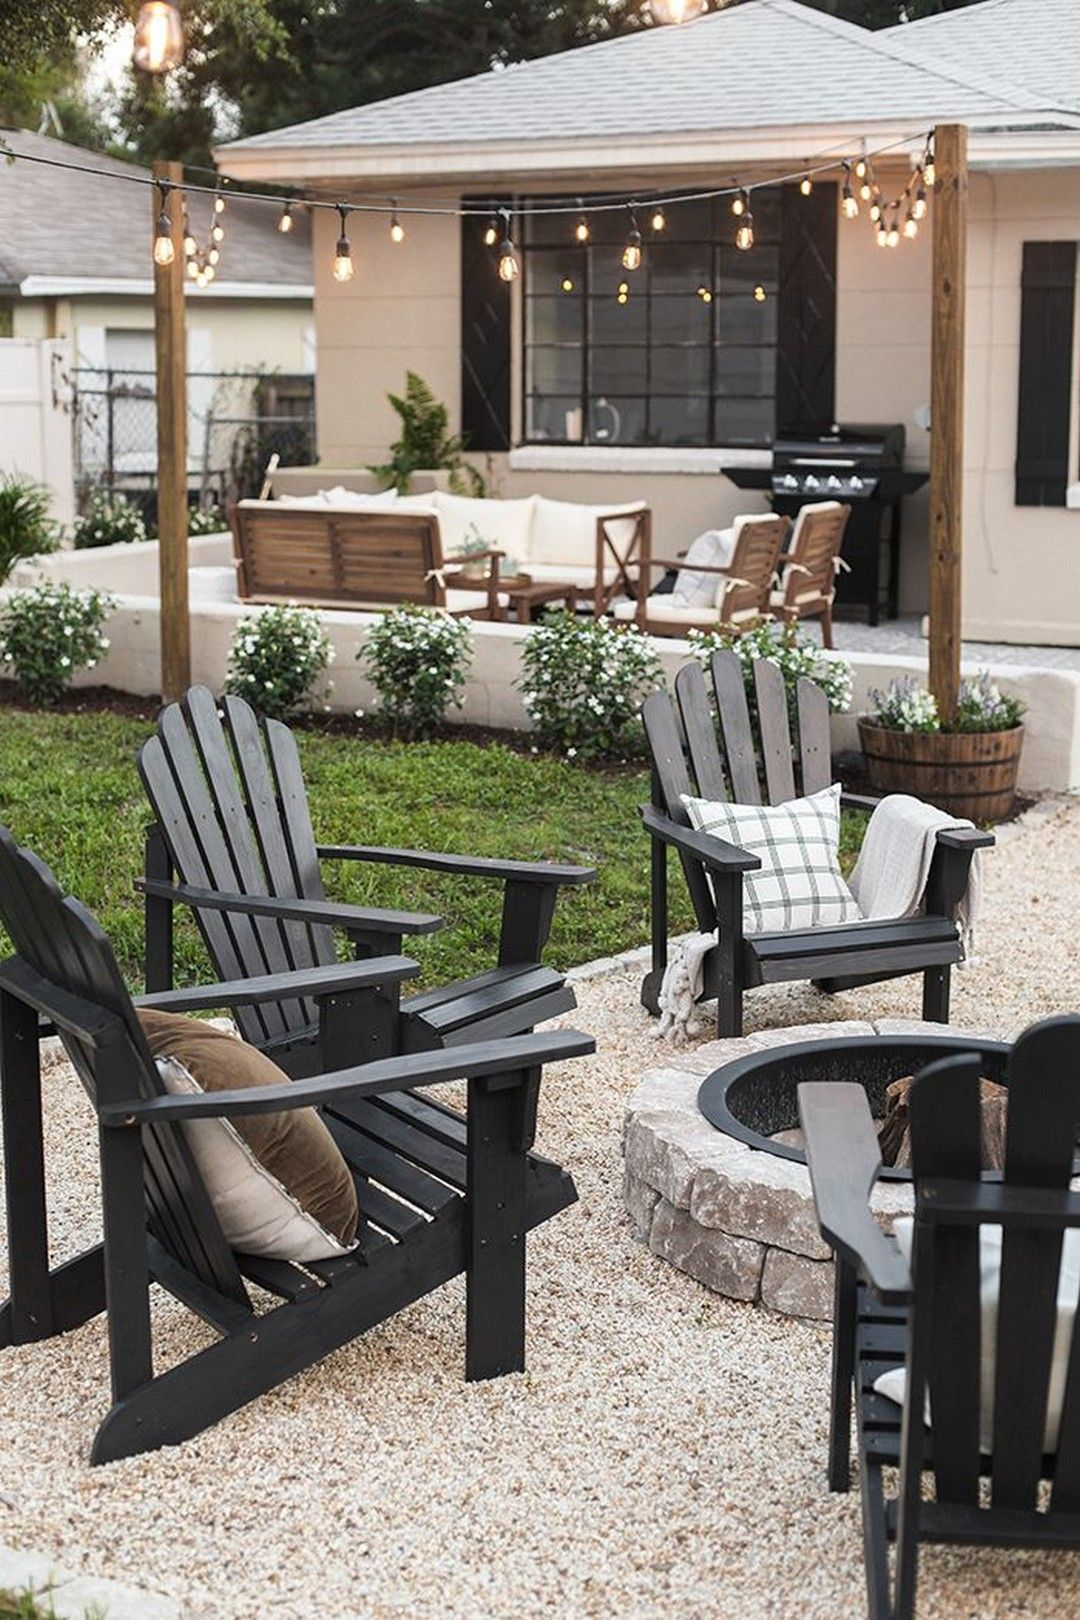 Backyard Patio Design Outdoor Living Patio Decorating Ideas On A Budget Backyard Patio Designs Patio Design